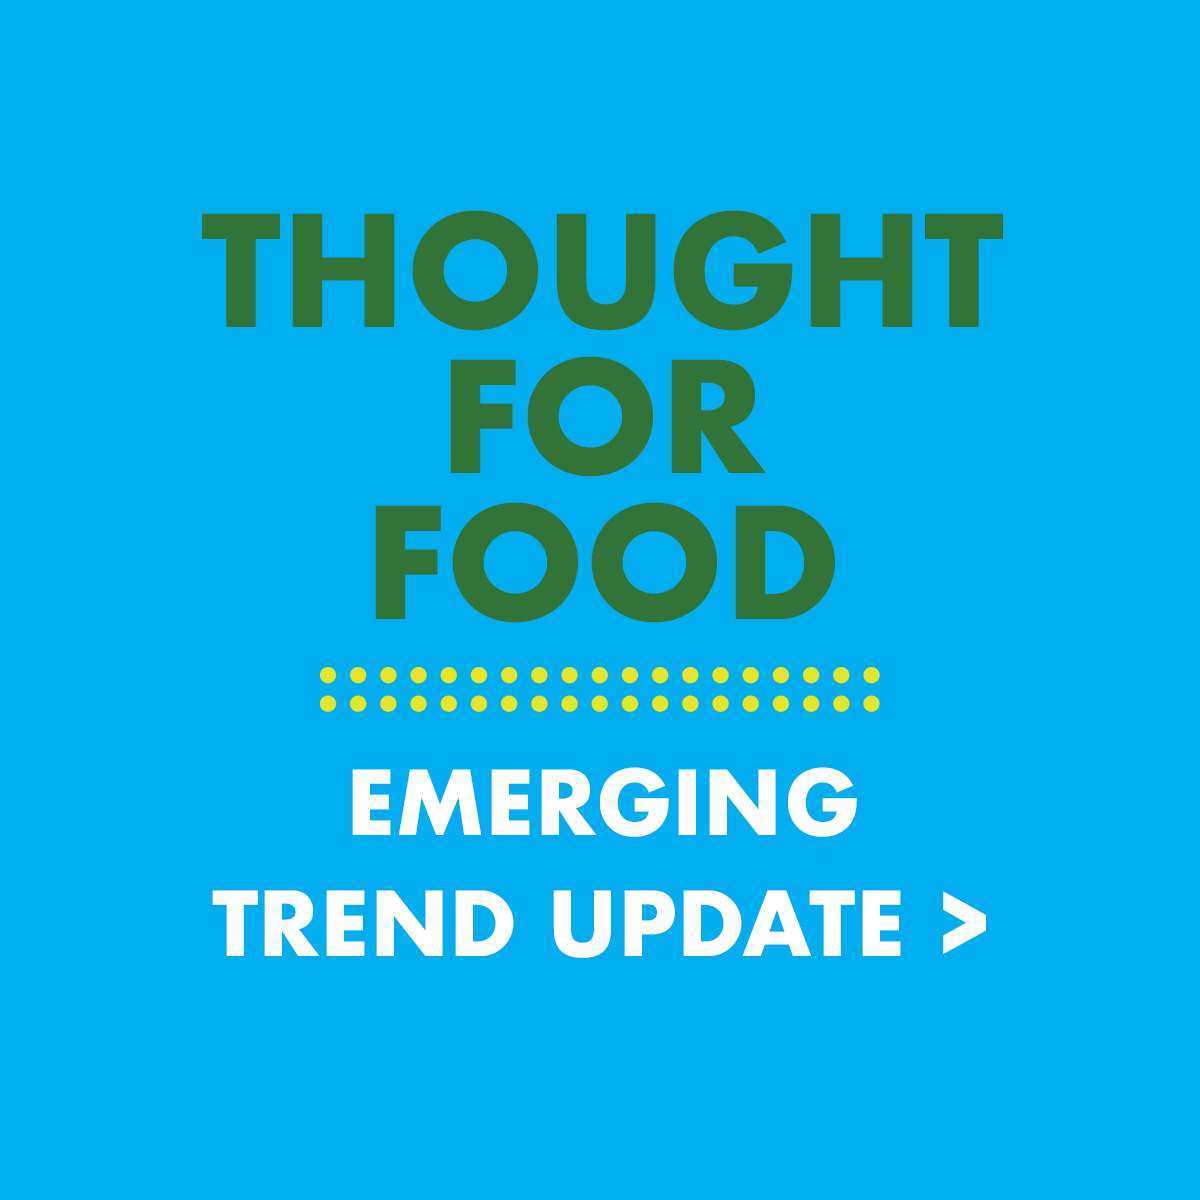 Thought For Food, emerging trend update >